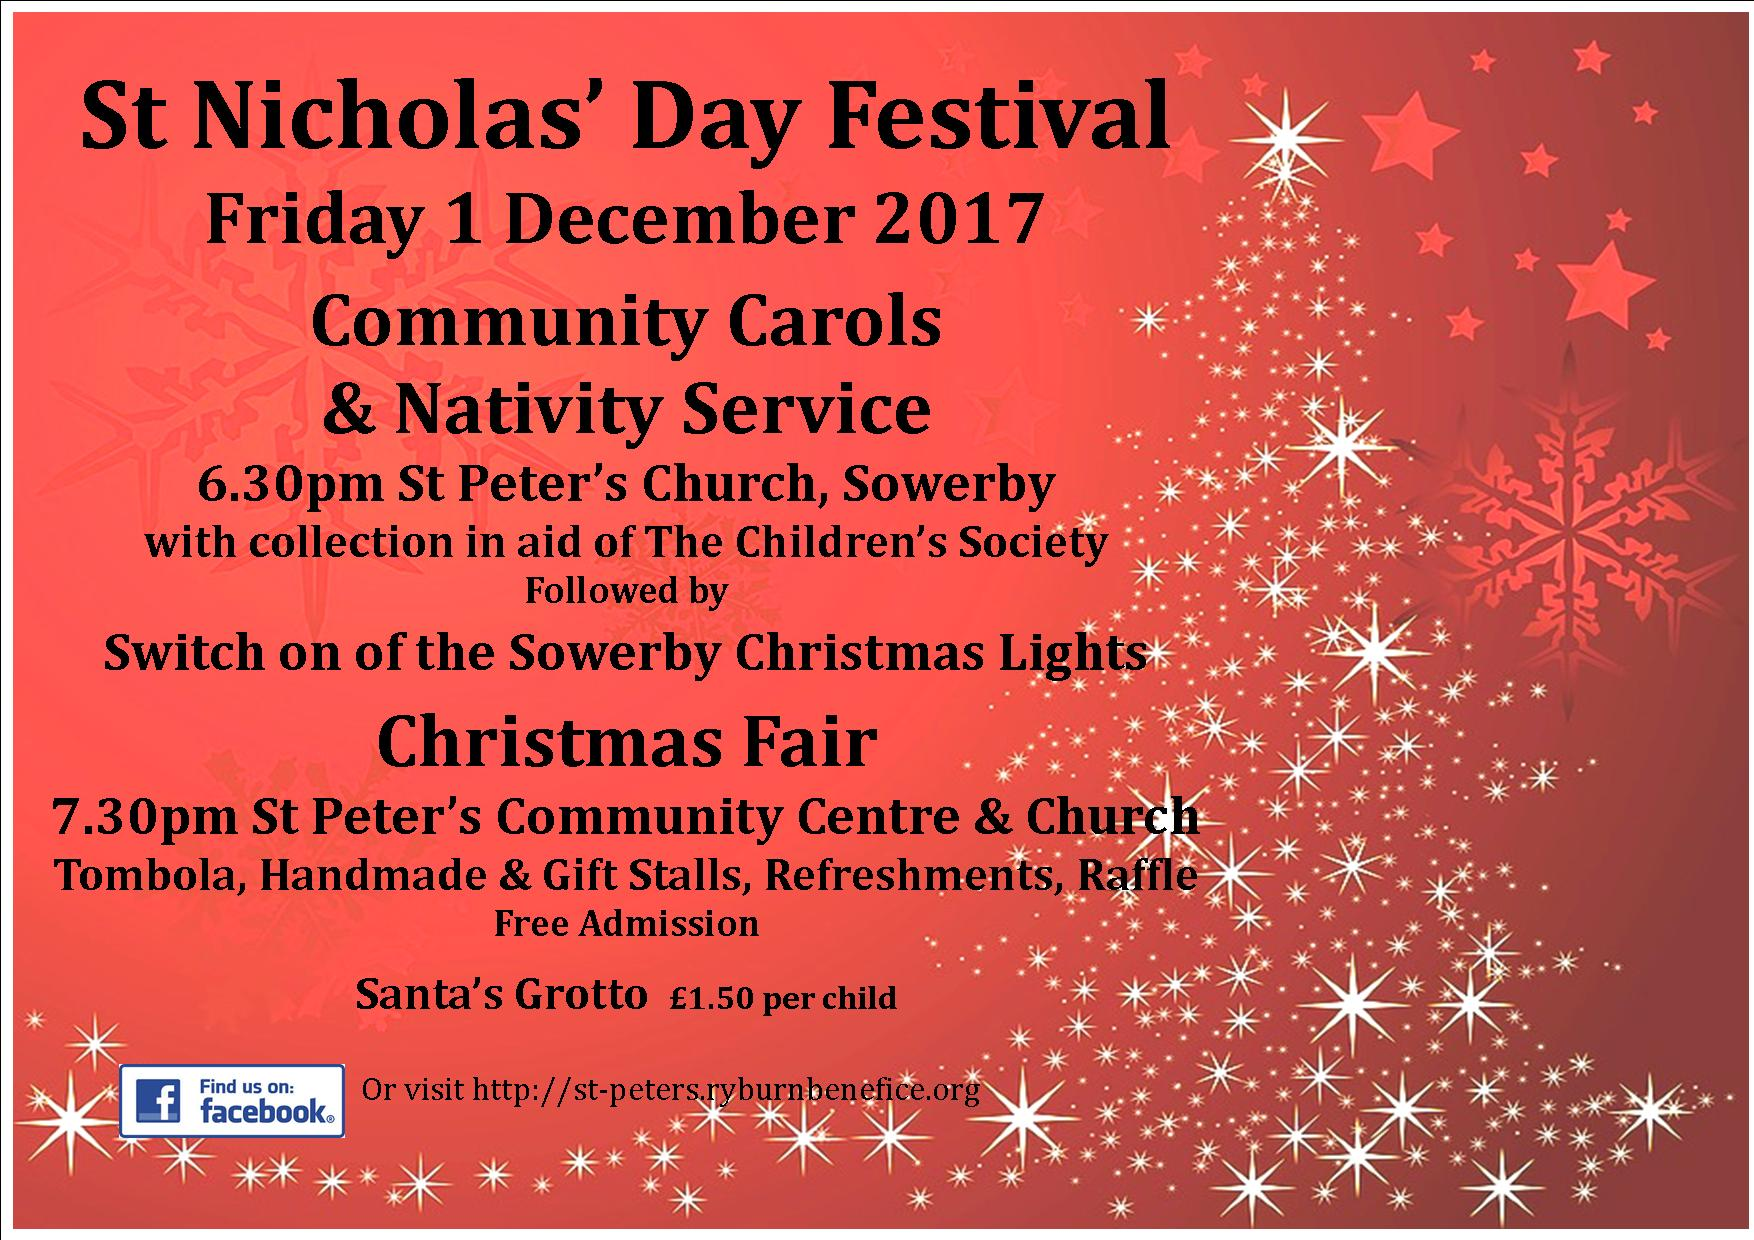 St Nicholas Day poster 2017